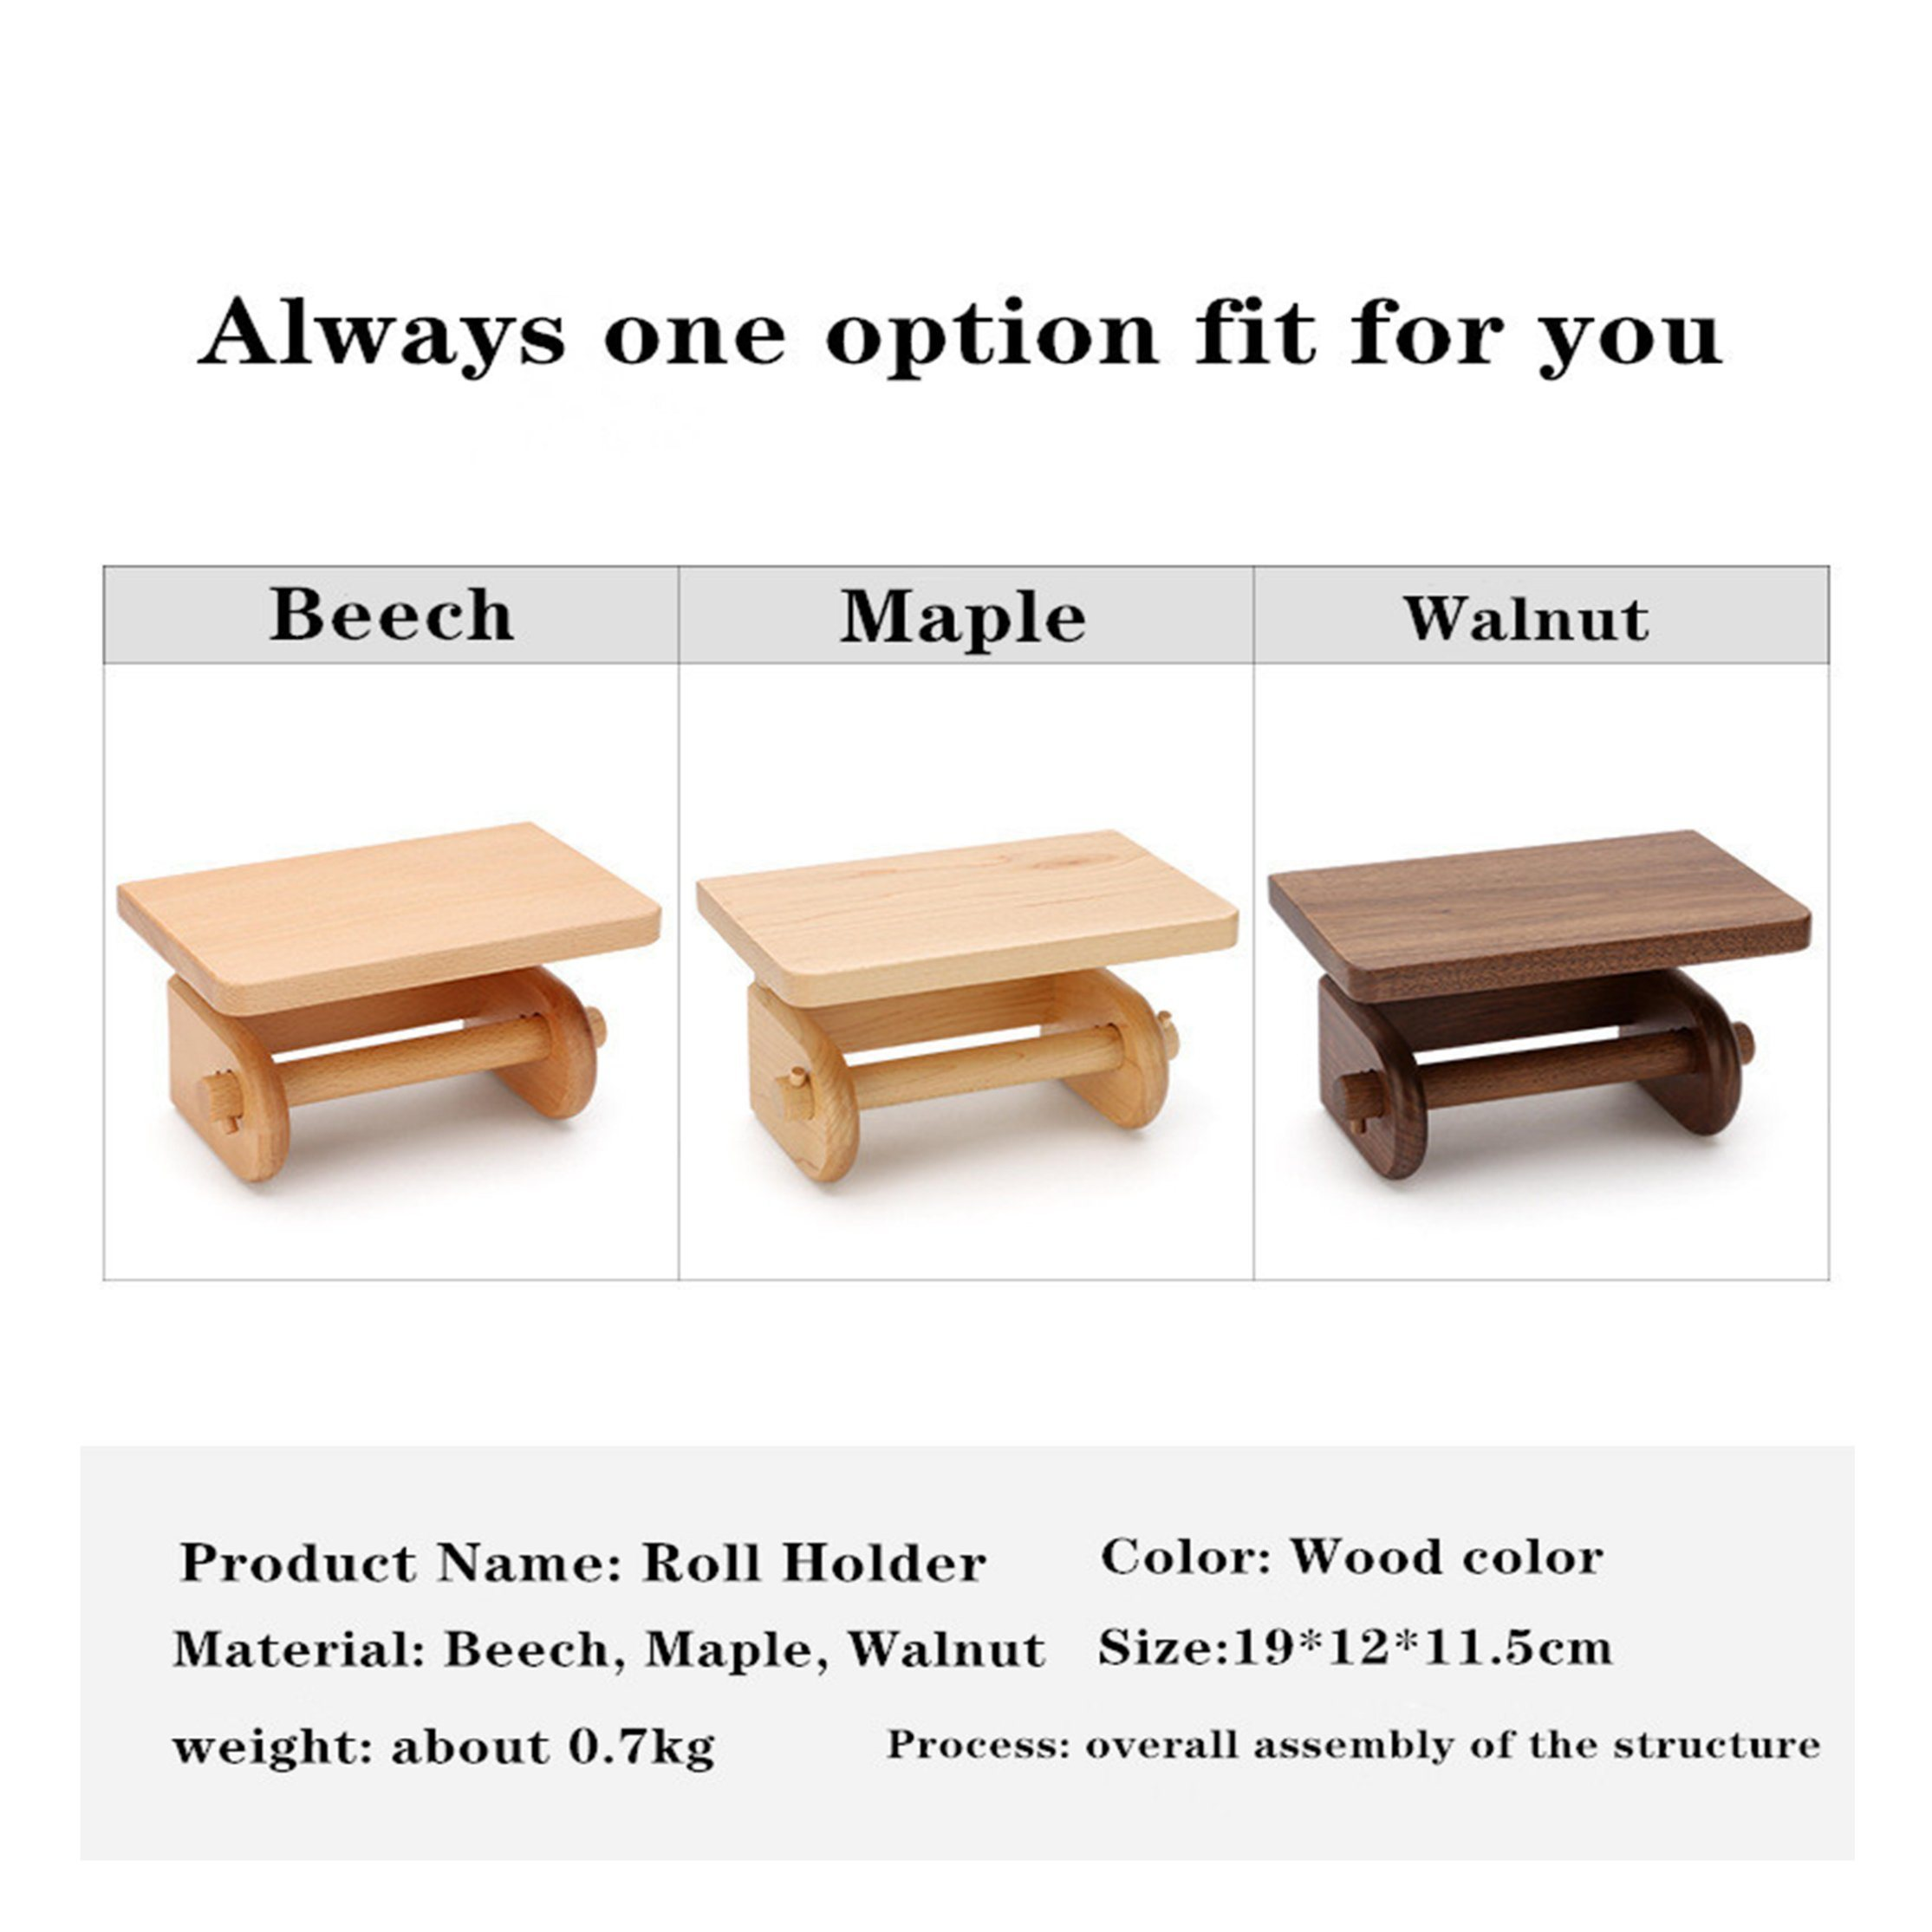 China Wooden Creative Paper Towel Rack Toilet Toilet Paper Holder Kitchen Wall Mounted Storage Wooden Roll Holder Amaw 0035 Photos Pictures Made In China Com